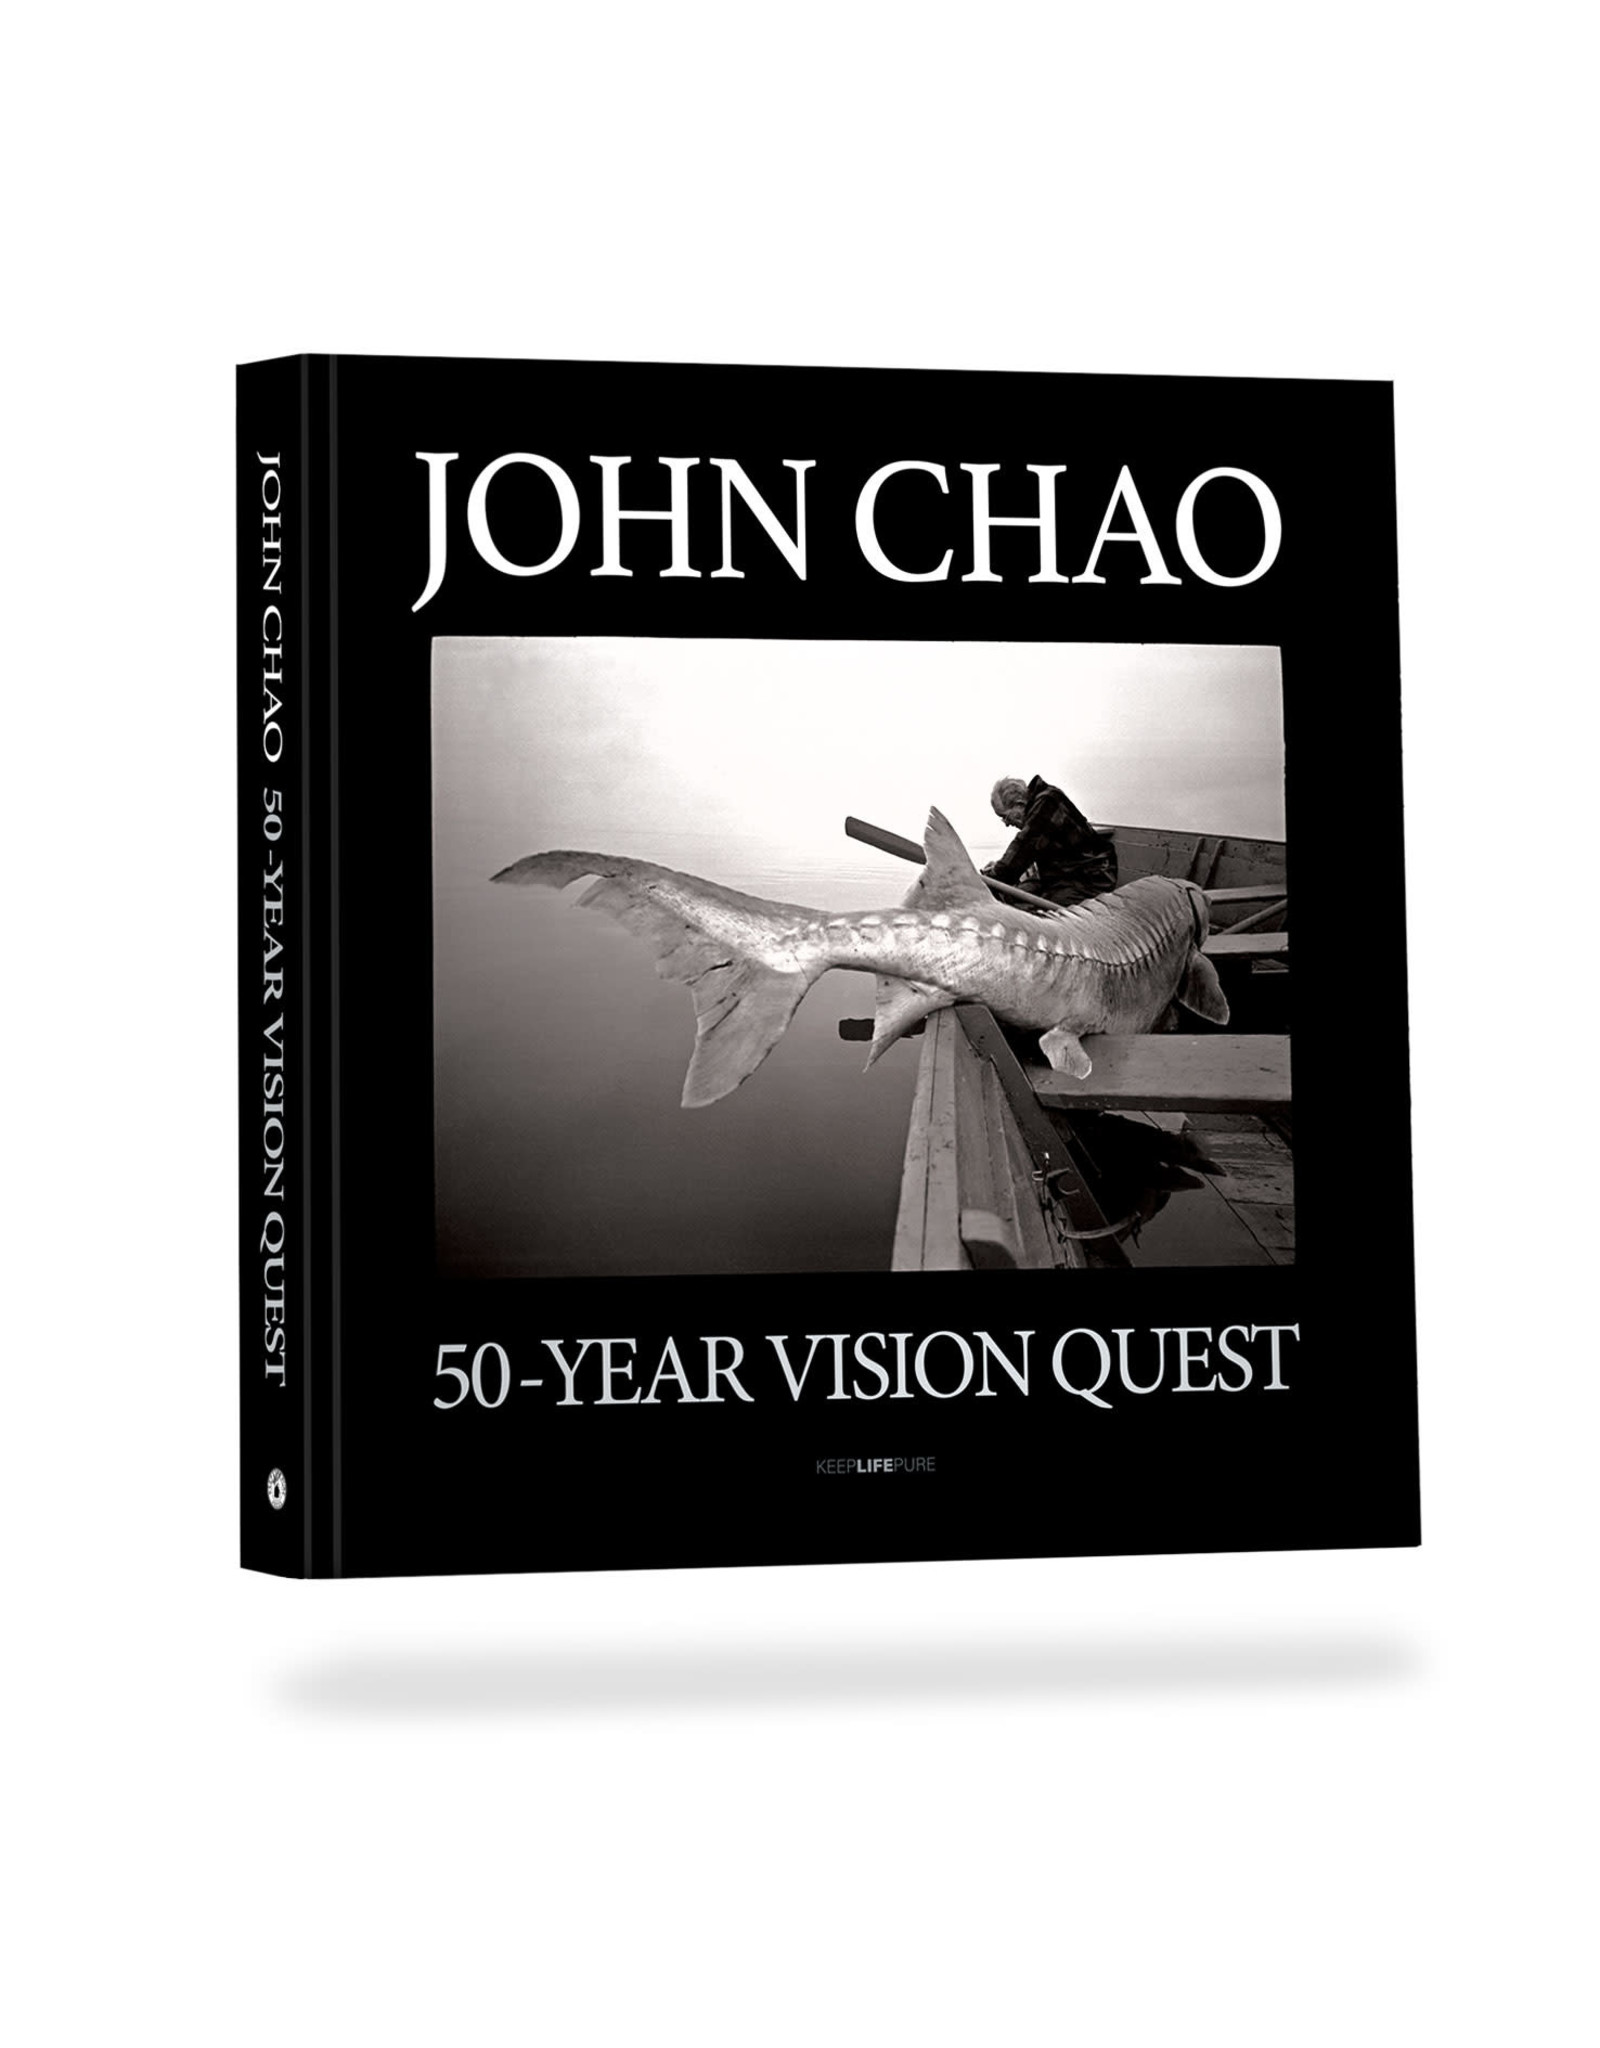 John Chao: 50-Year Vision Quest (Signed)